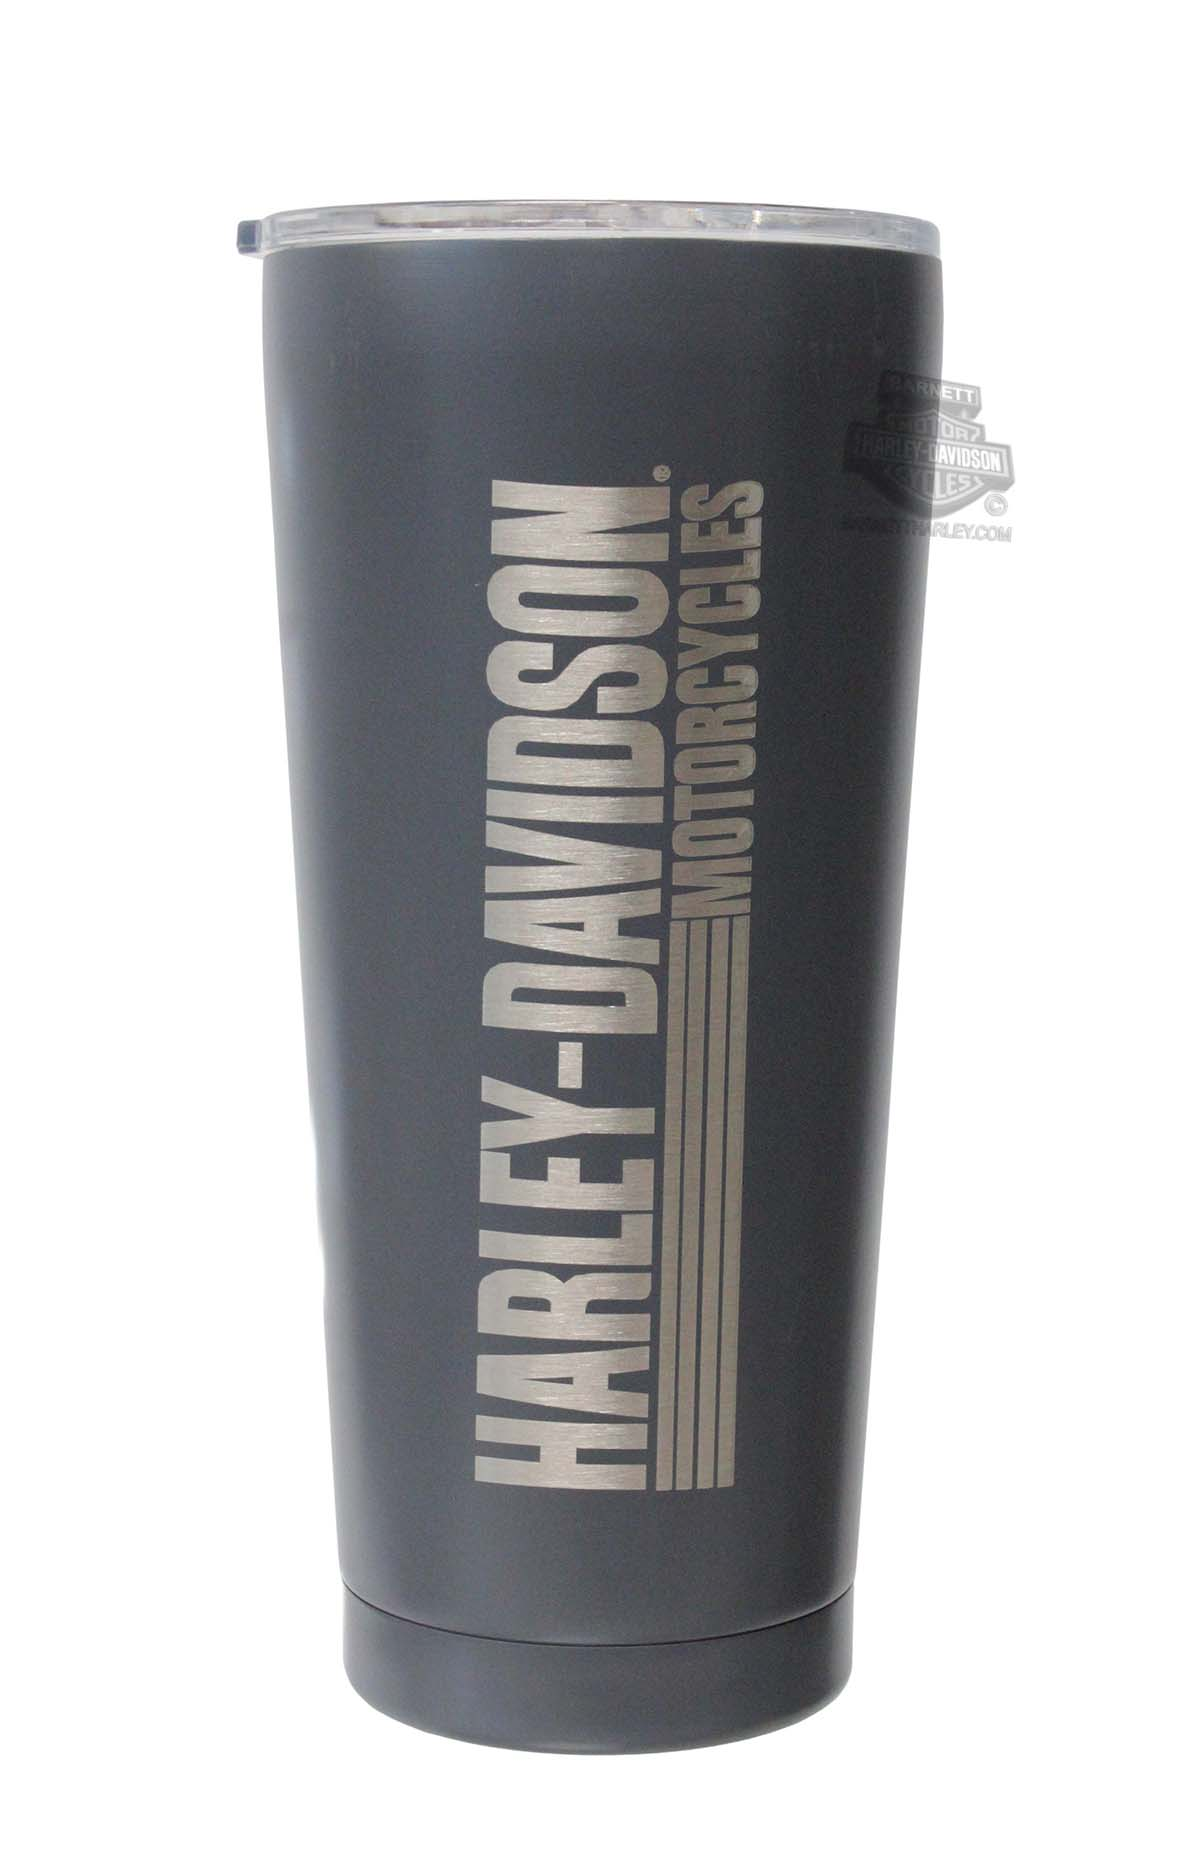 Ee 3ssb4912 Harley Davidson Etched H D Name Double Wall Stainless Steel Tumbler Barnett Harley Davidson